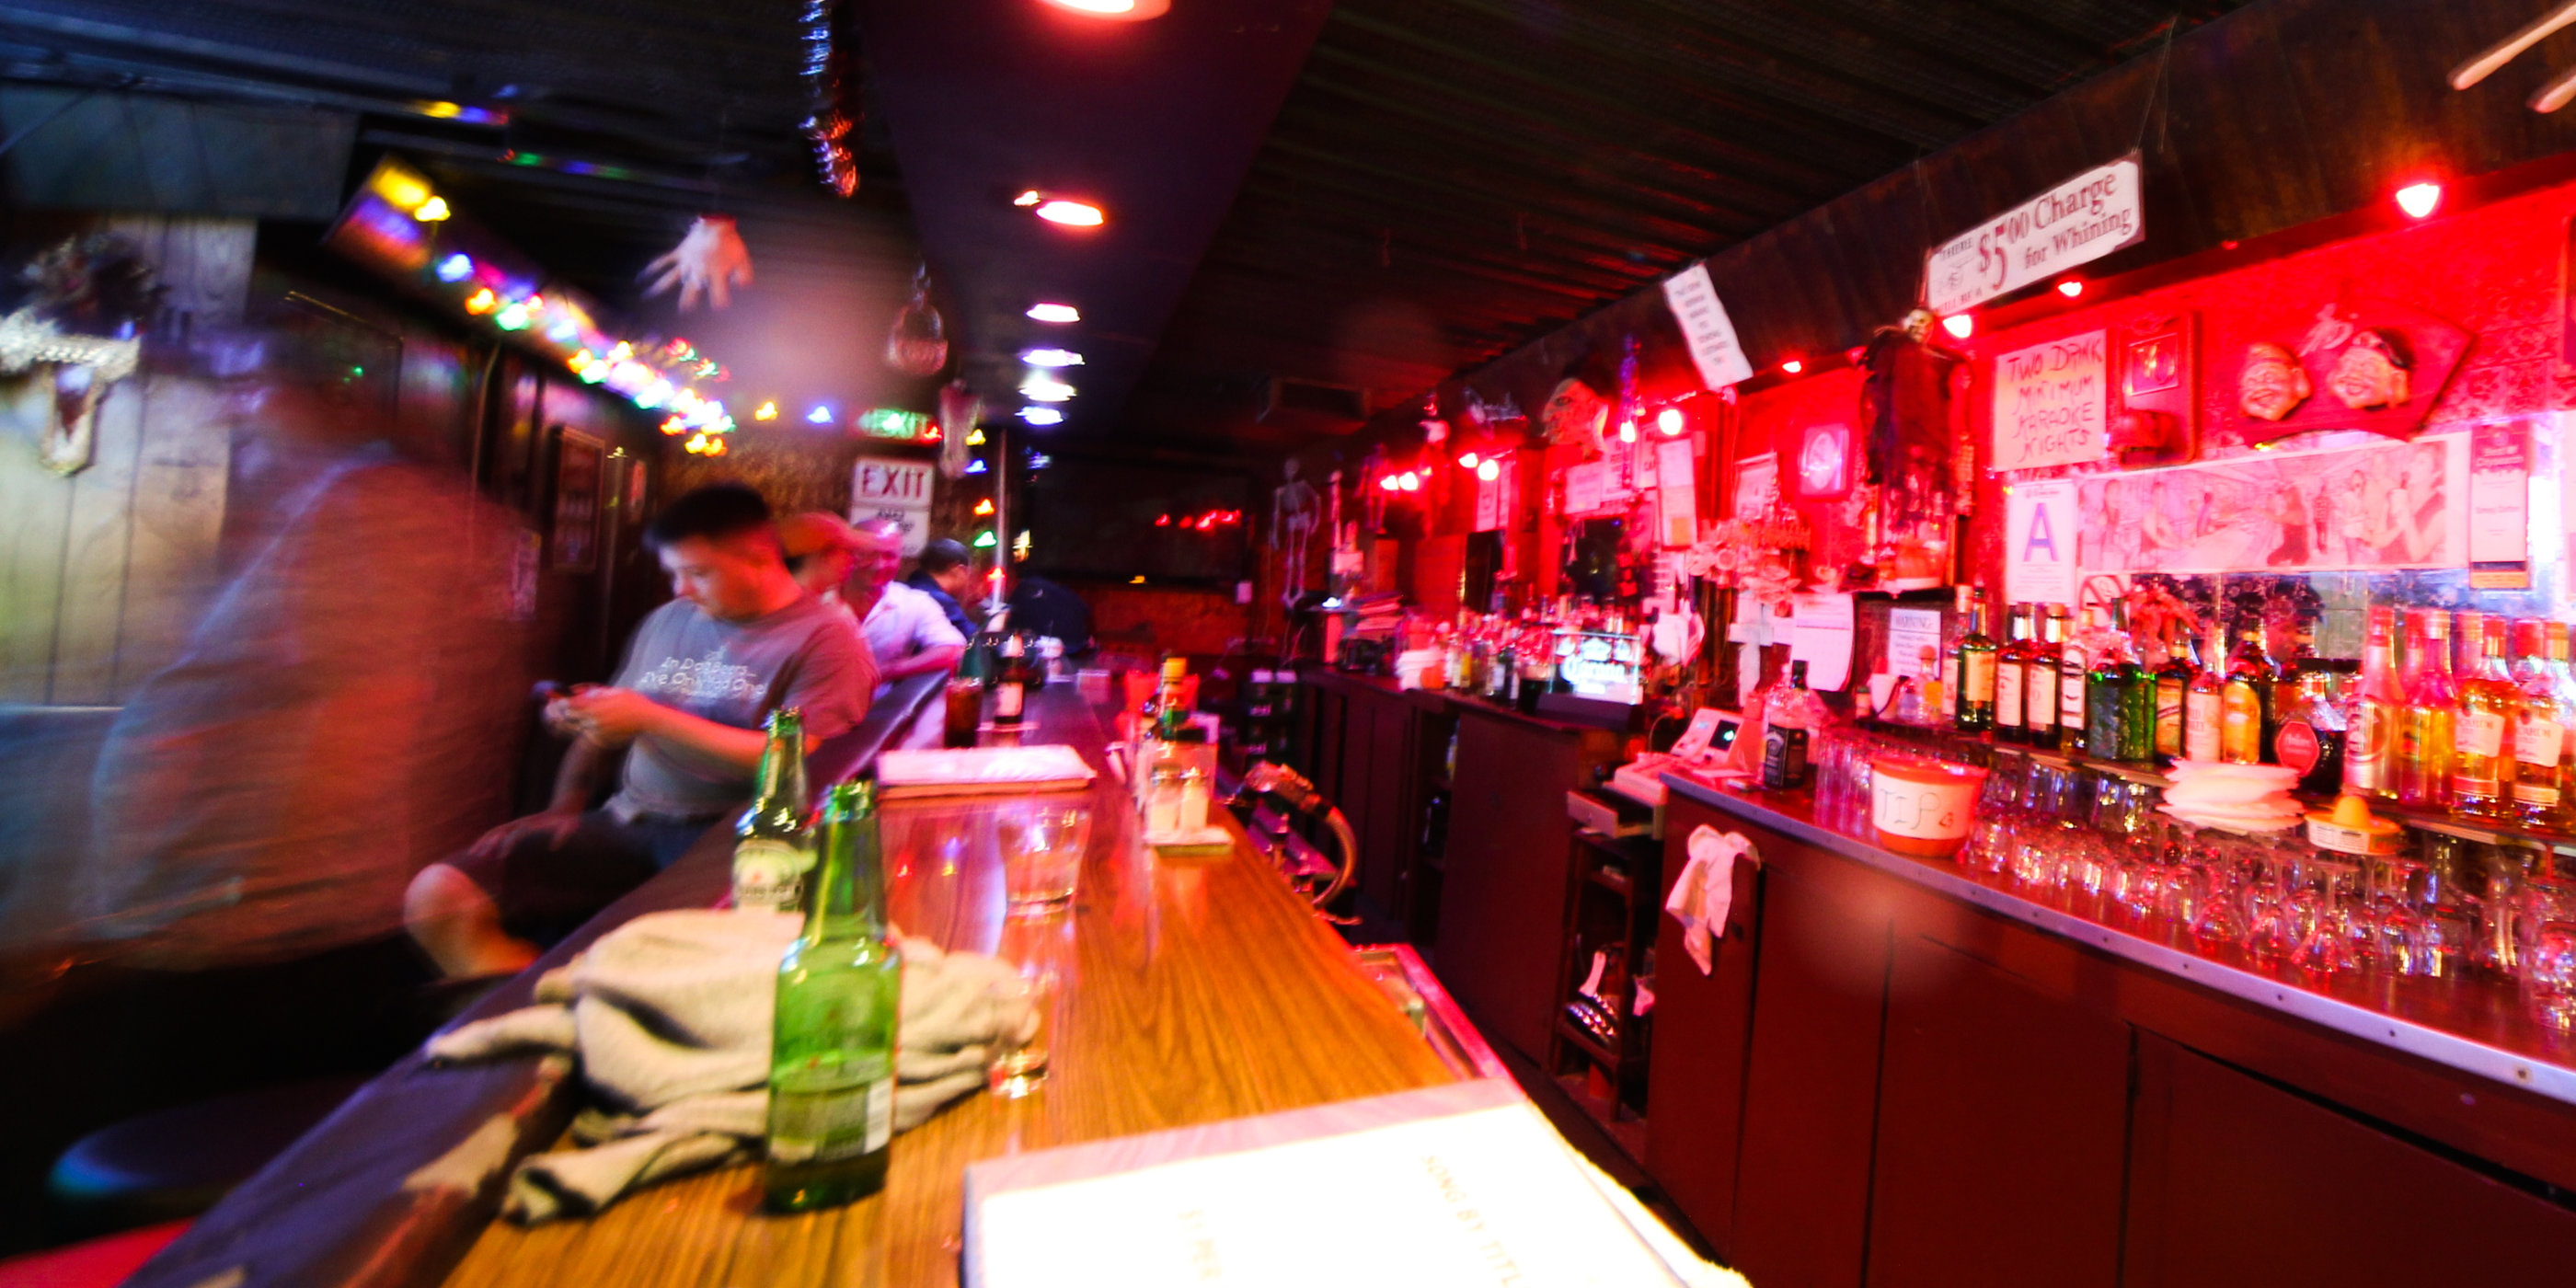 The 21 best dive bars in america - Dive bar definition ...